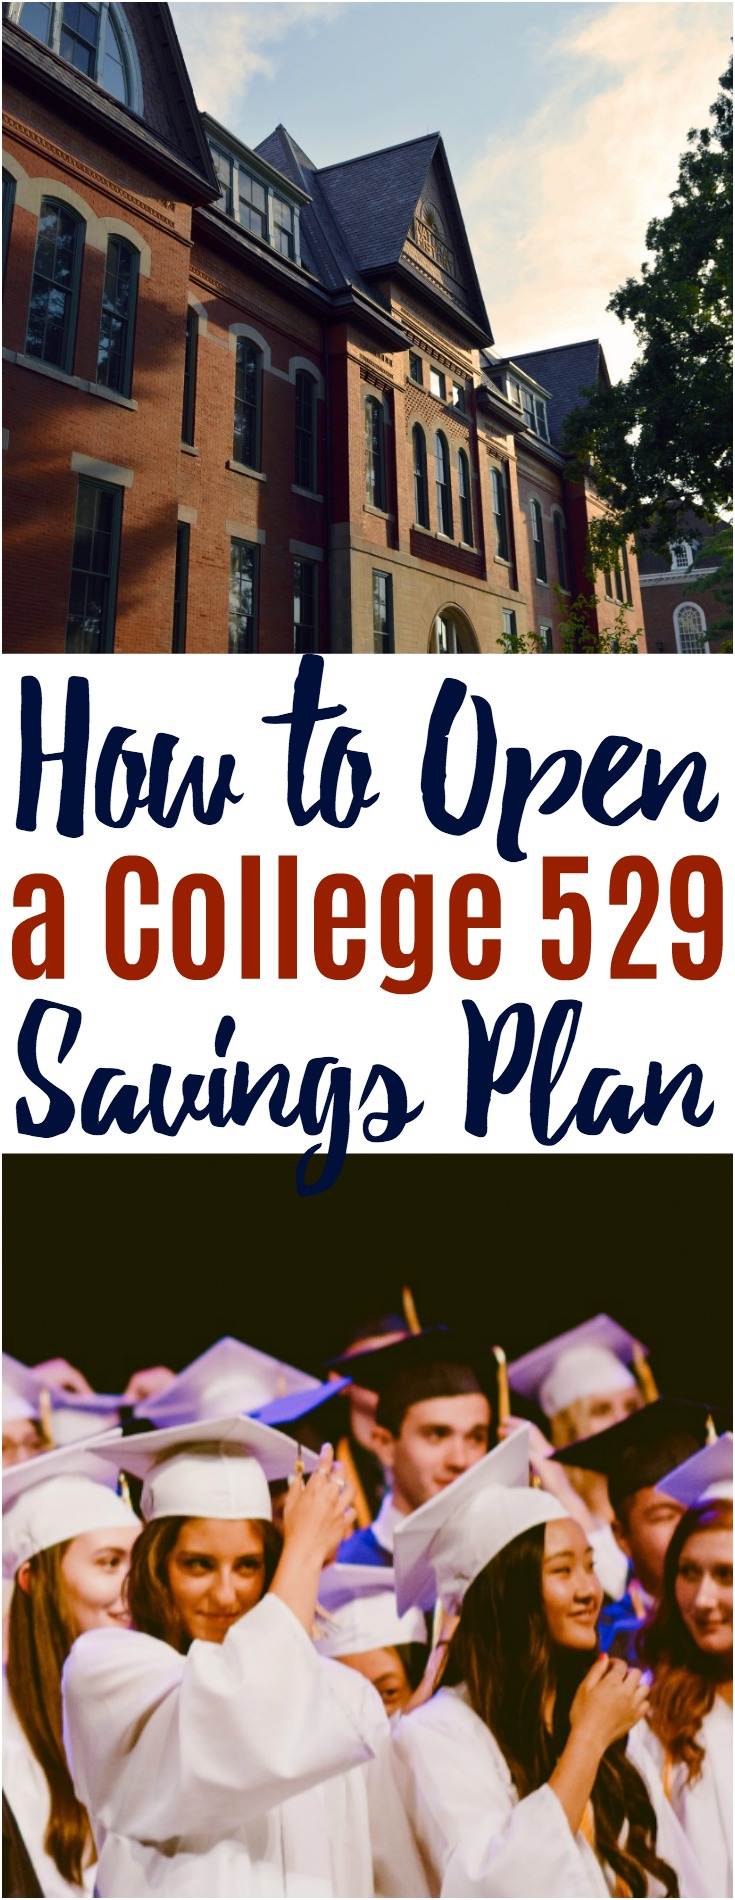 A College 529 plan is a wonderful vehicle to help you save for your child's college. Take these 5 simple steps to help you open a College 529 plan for your child and start saving. #collegesavings #finance #529plan #budget #finance #savingmoney #investing